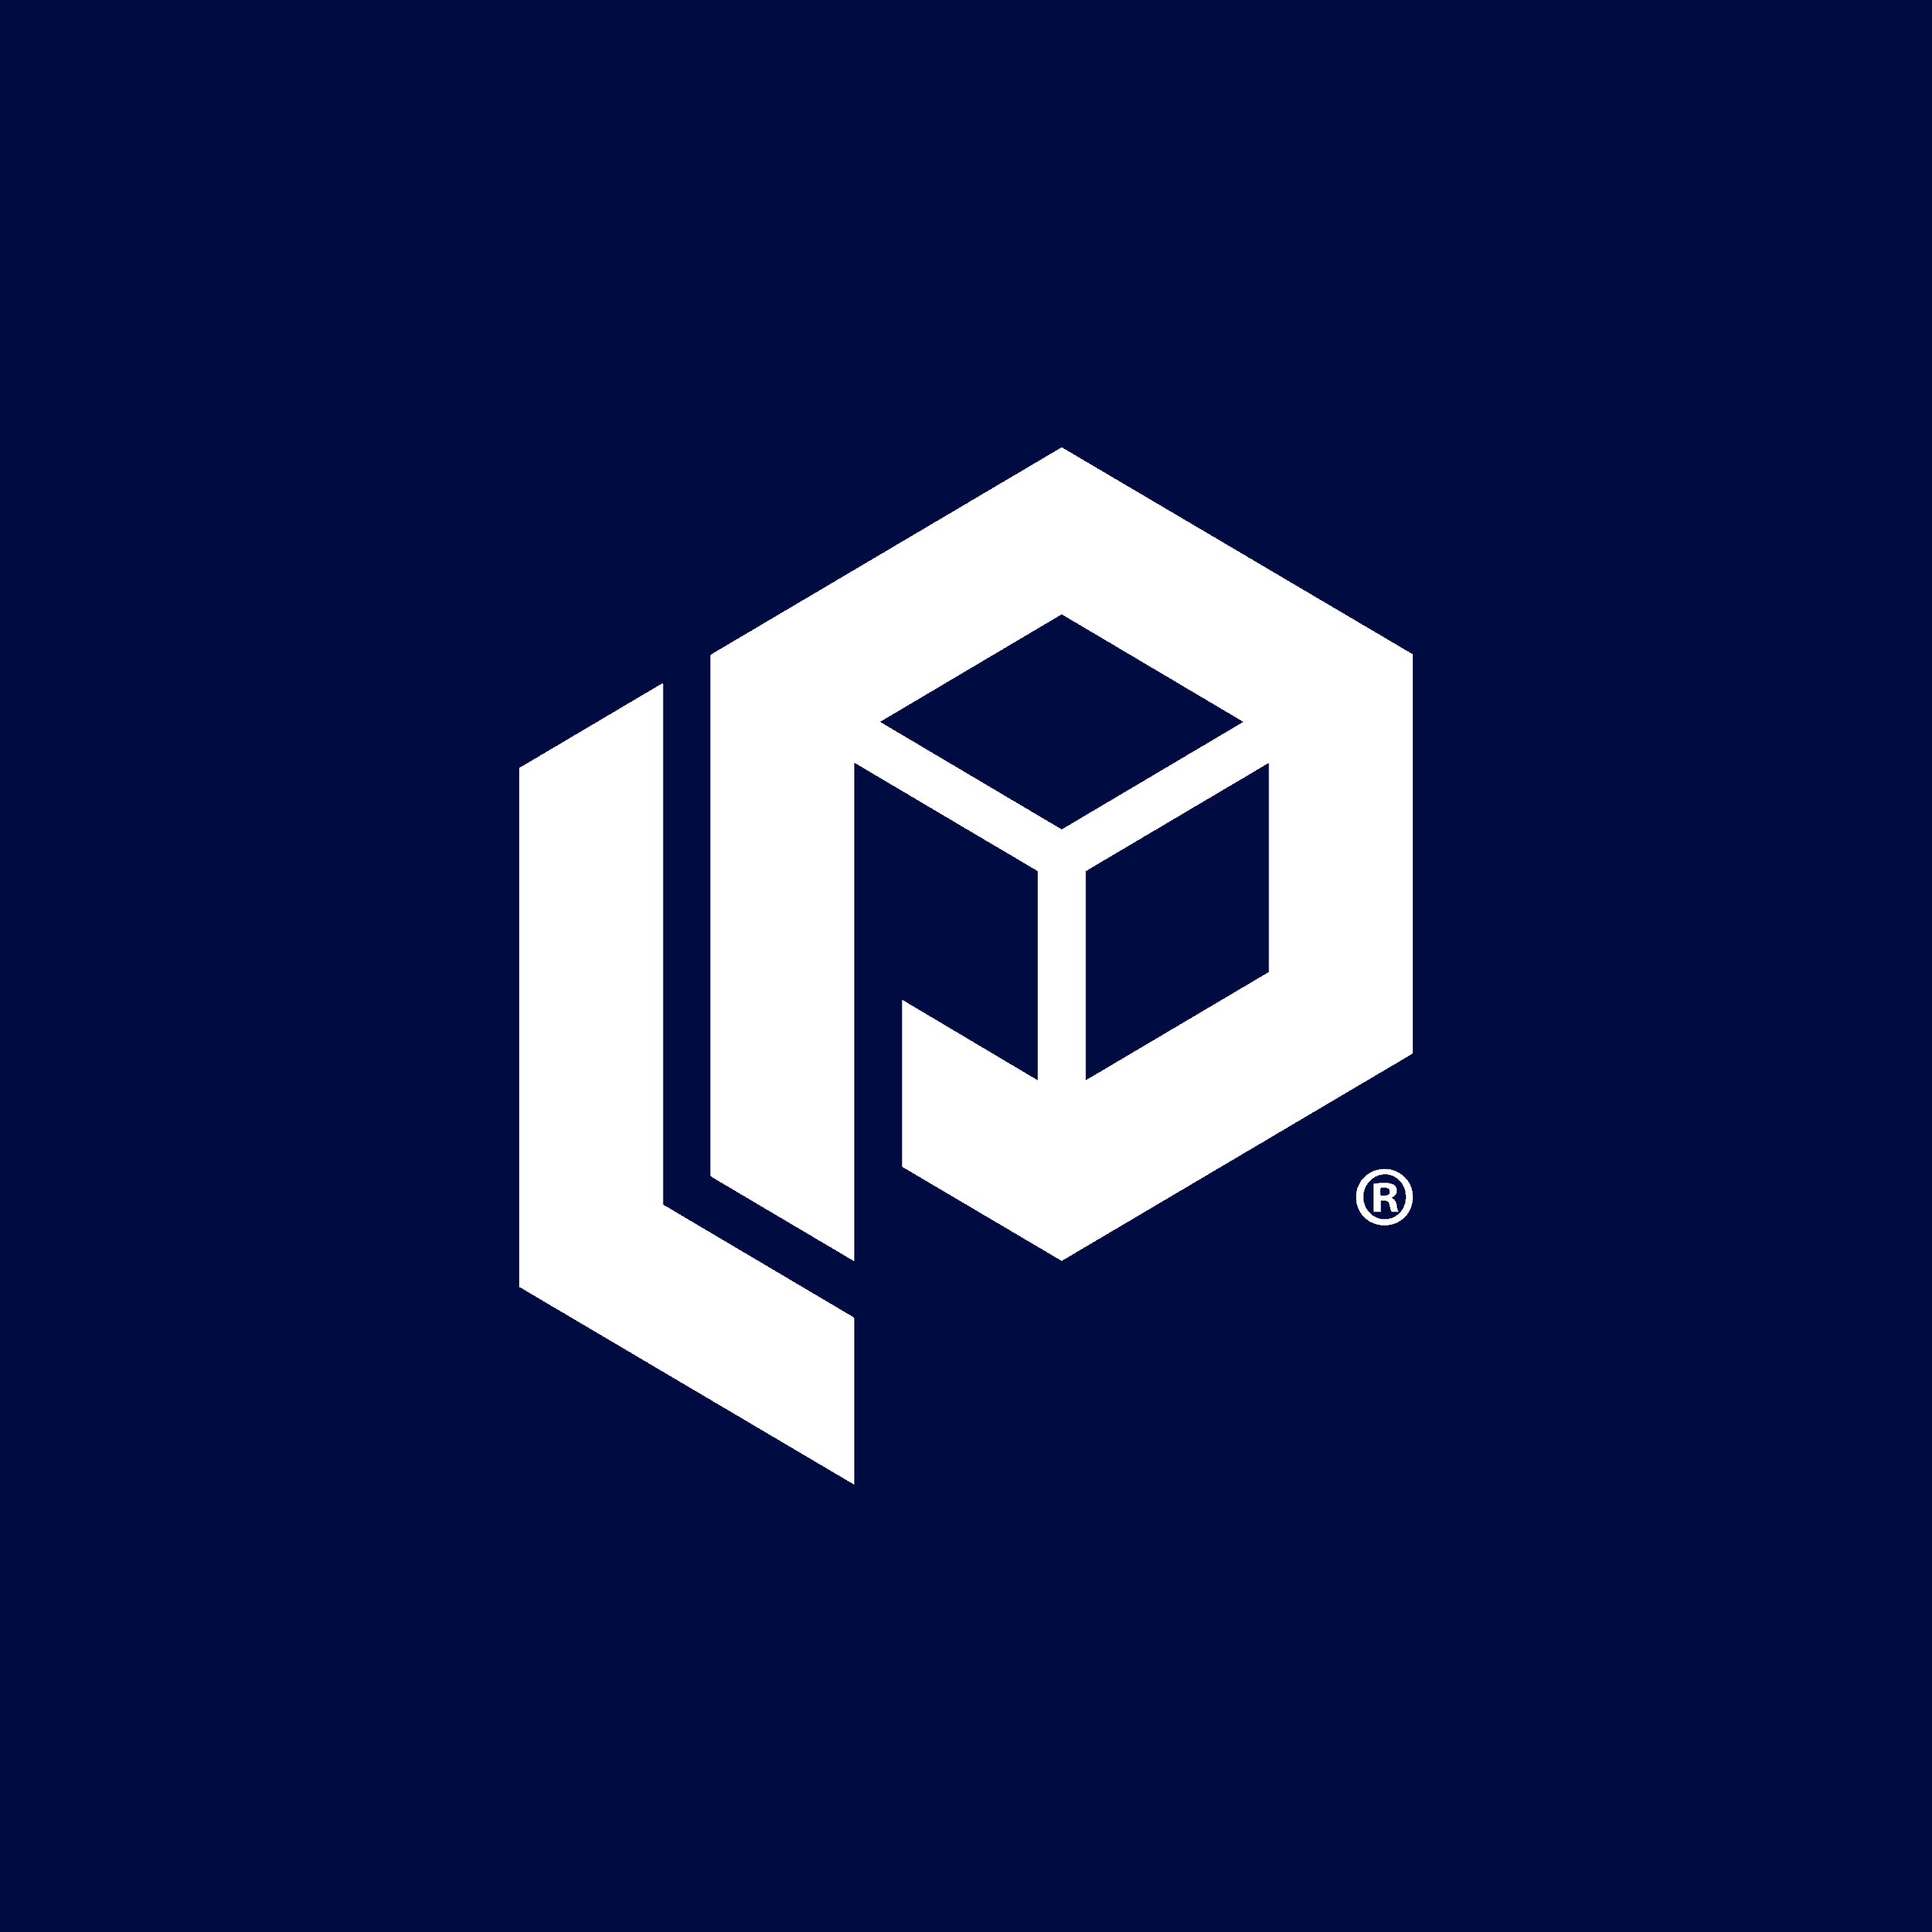 parcellab logo icon infront of blue background